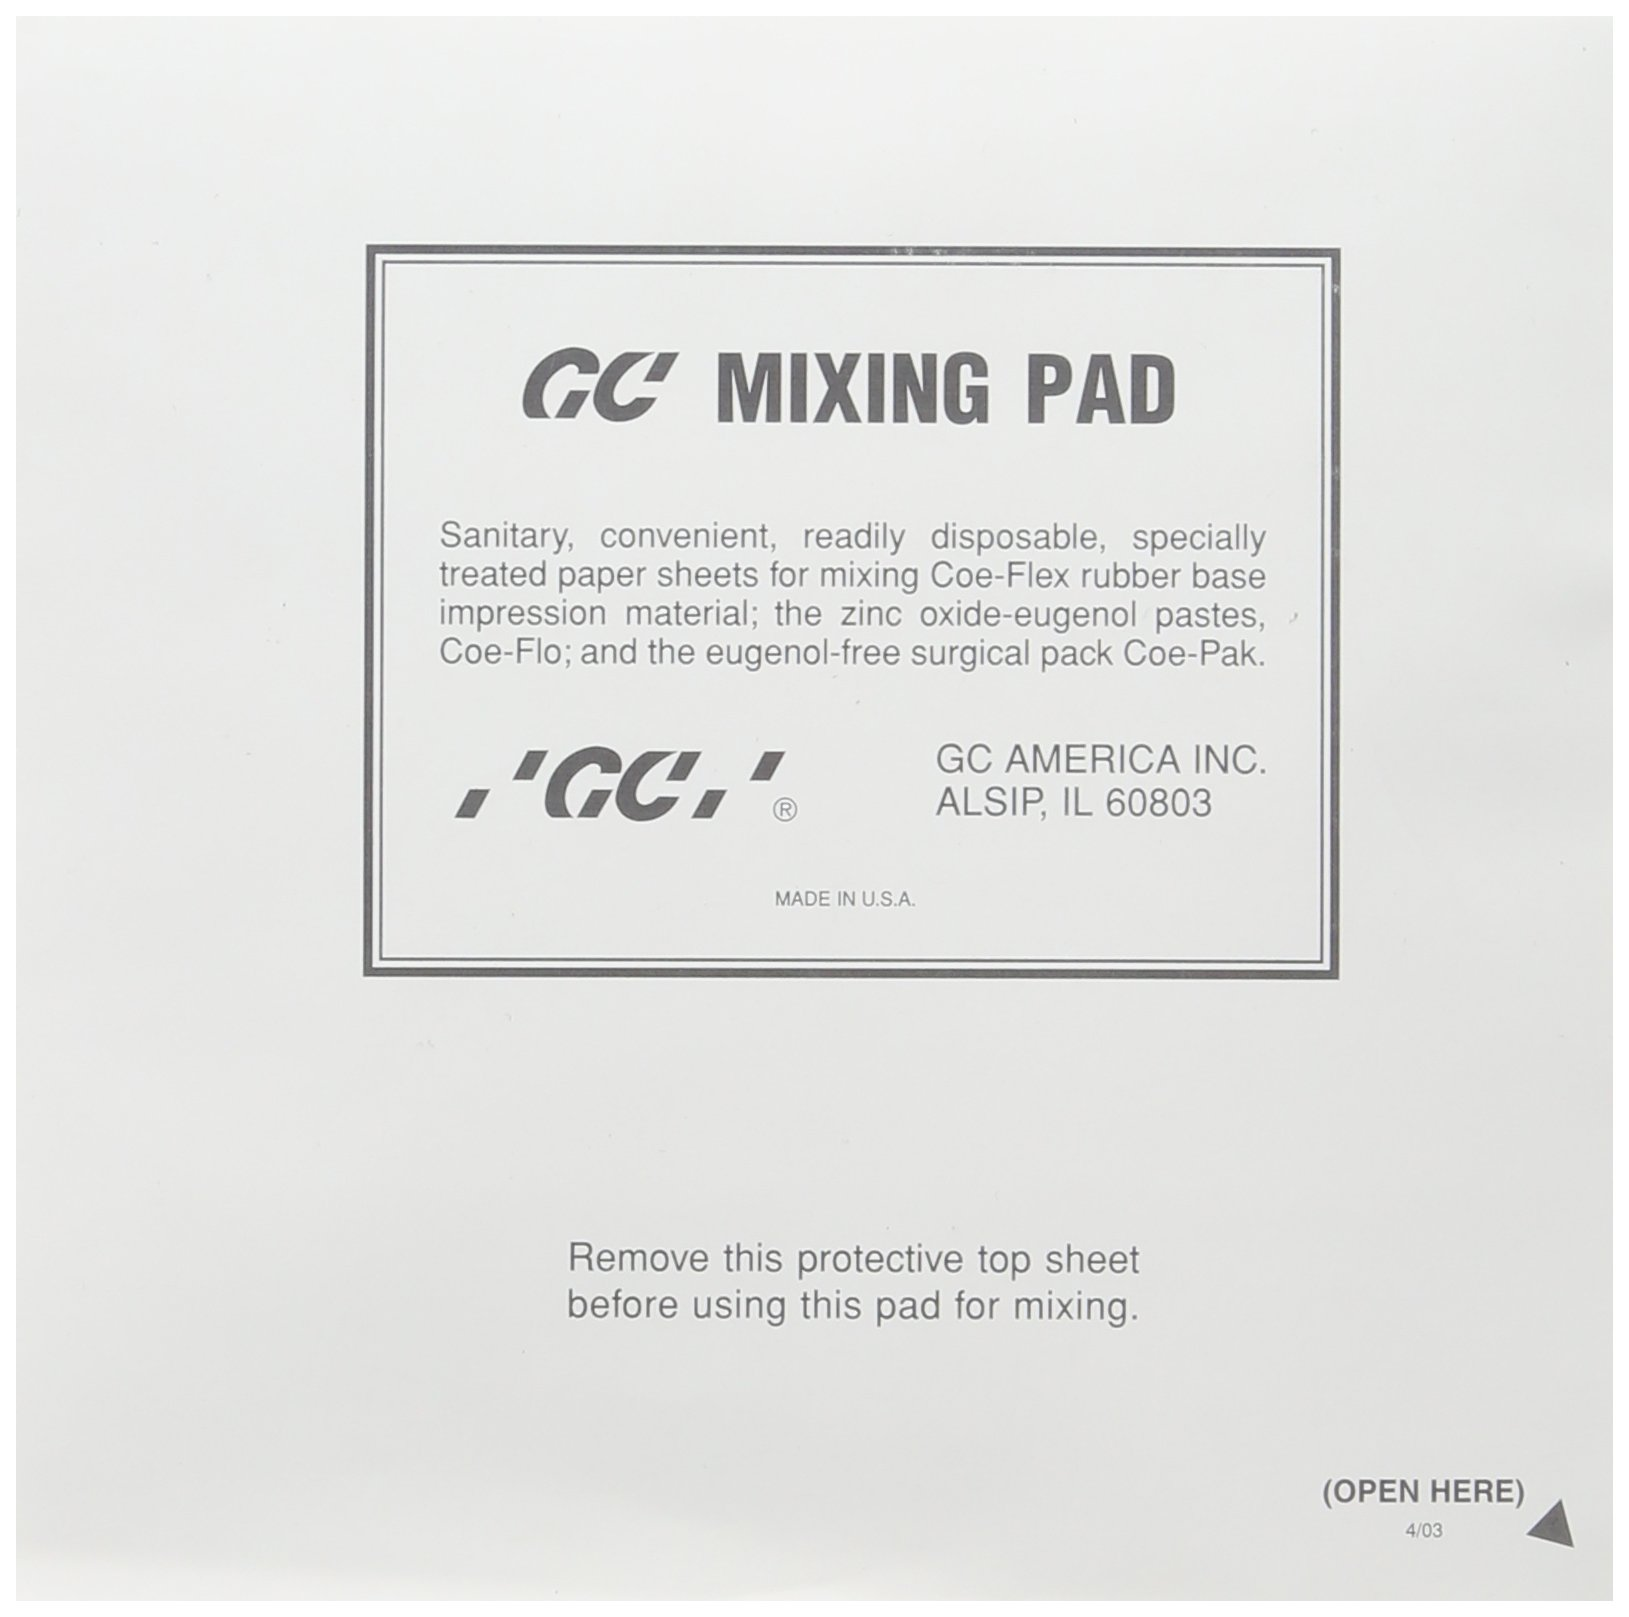 GC America 159112 Mixing Pads, 6'' x 6'' (Pack of 12) by GC America (Image #1)